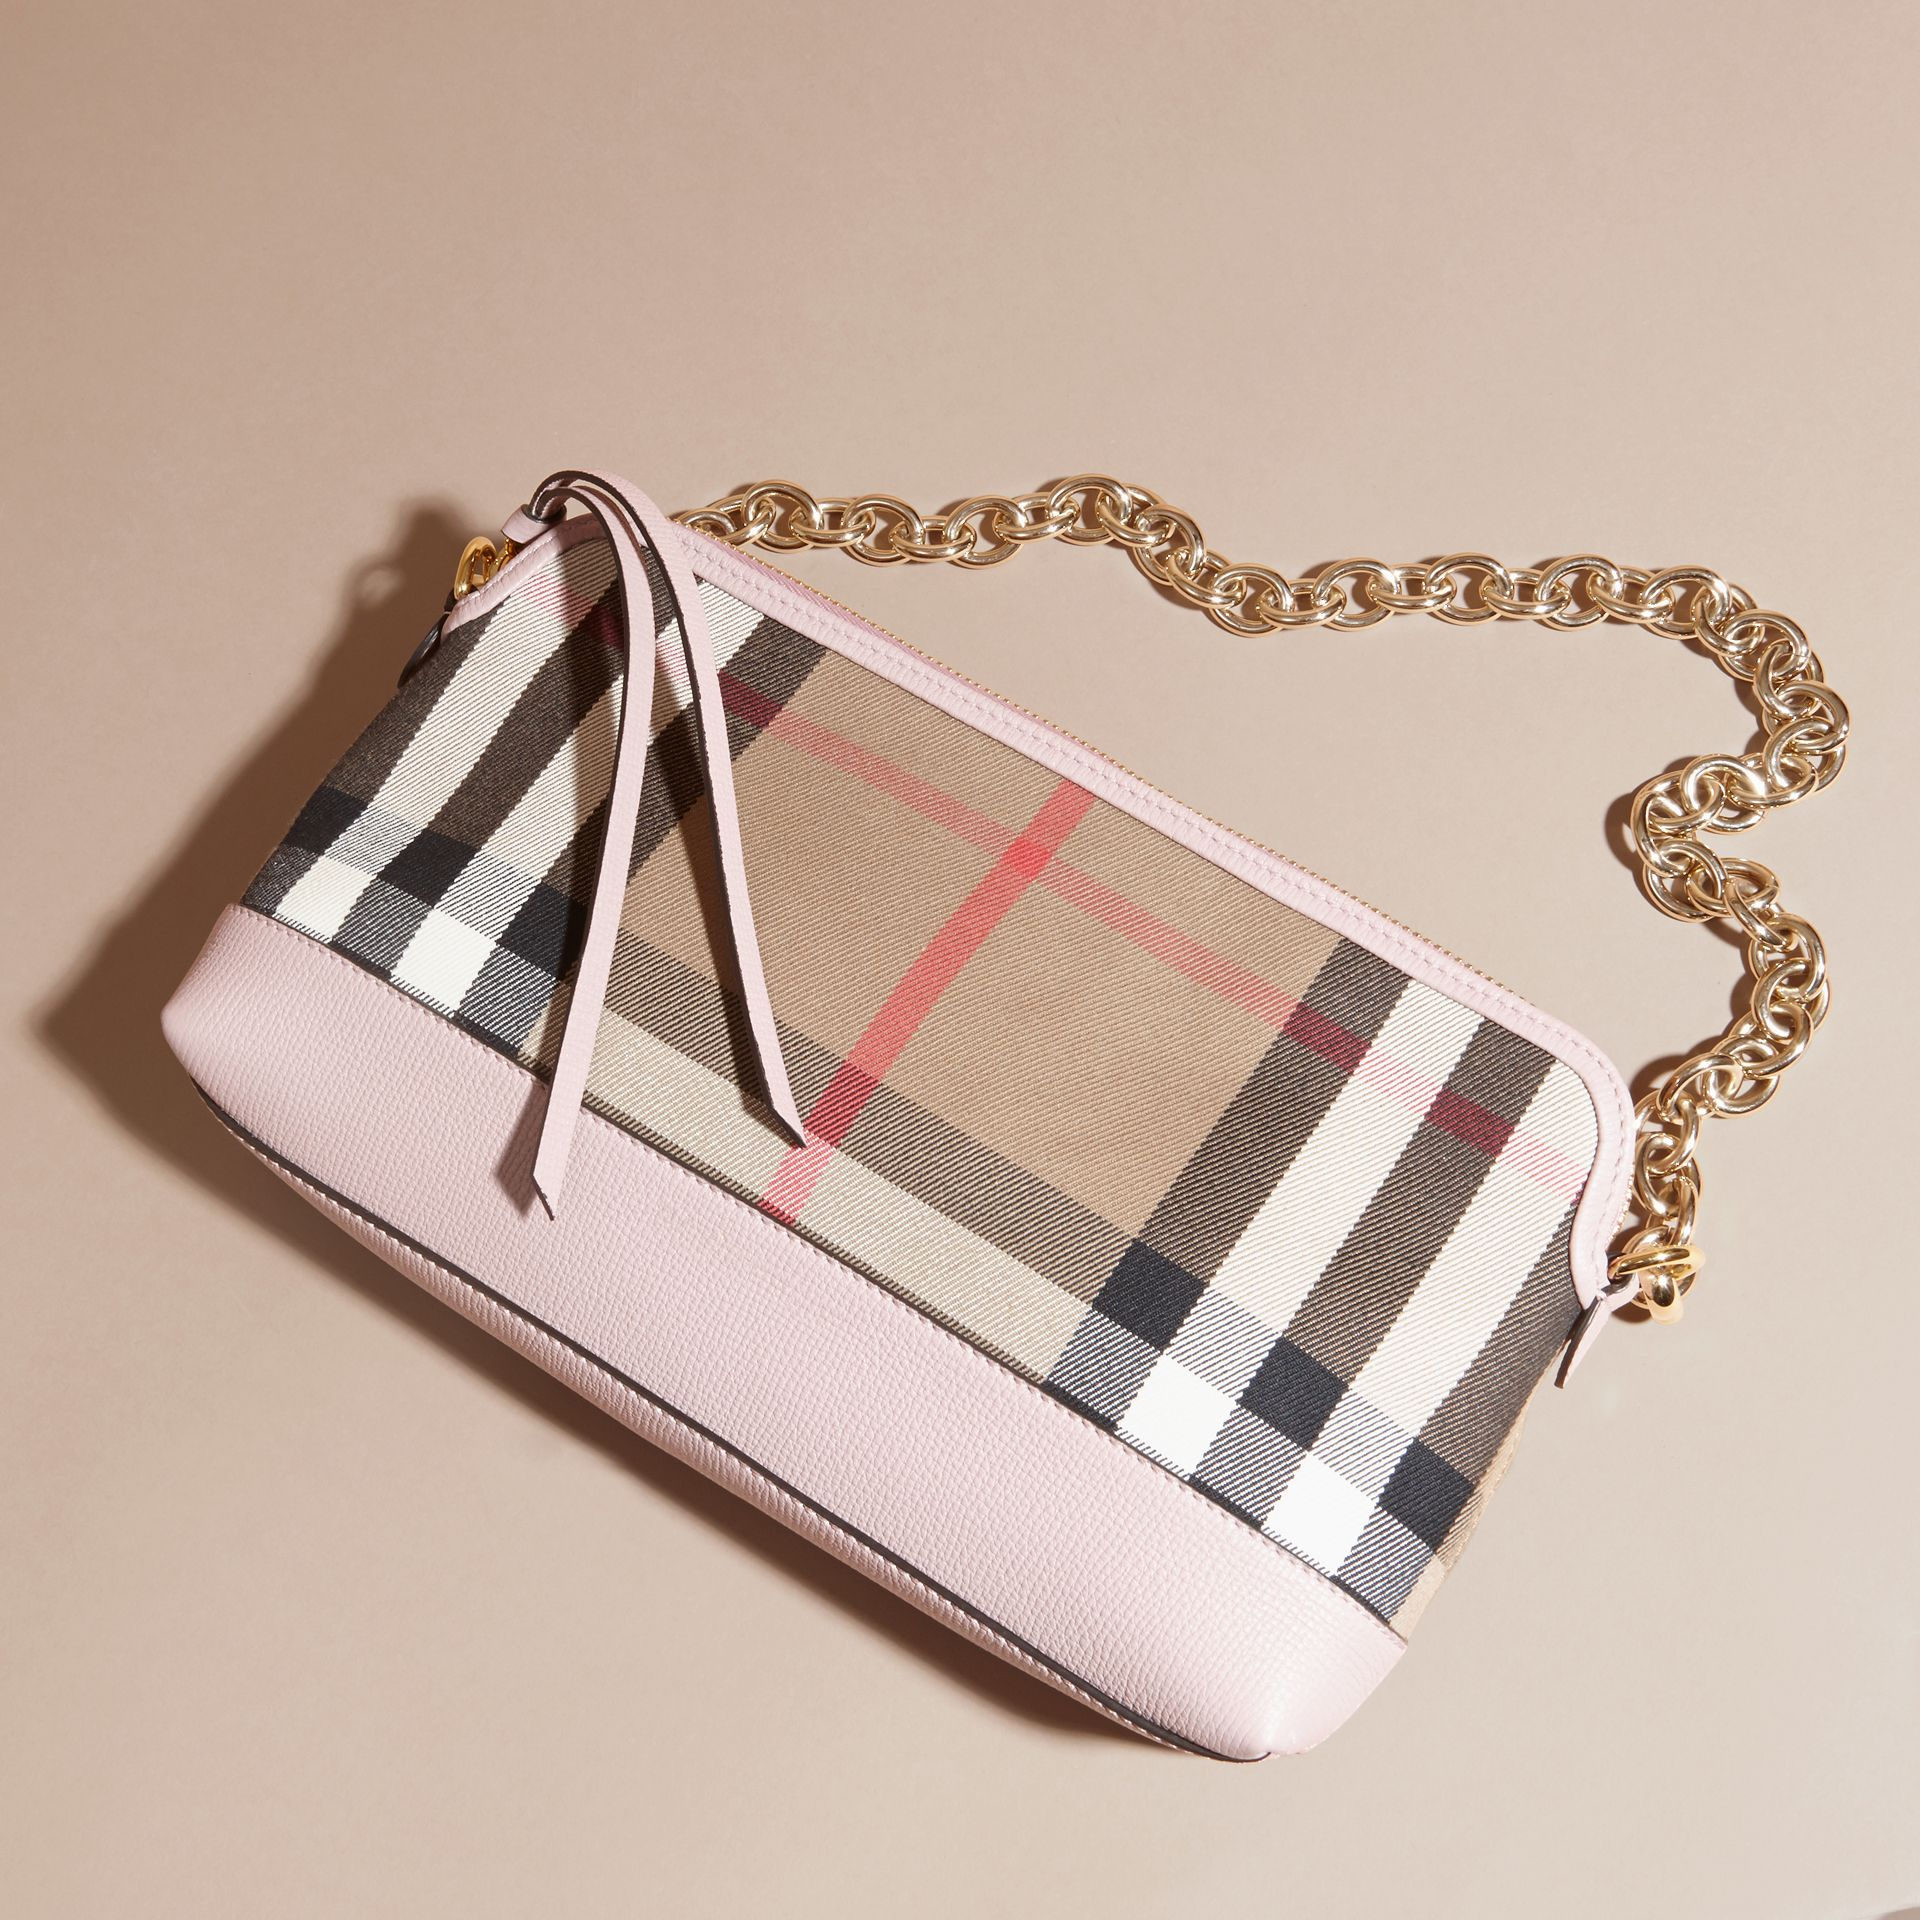 House Check and Leather Clutch Bag in Pale Orchid - Women | Burberry Hong Kong - gallery image 8